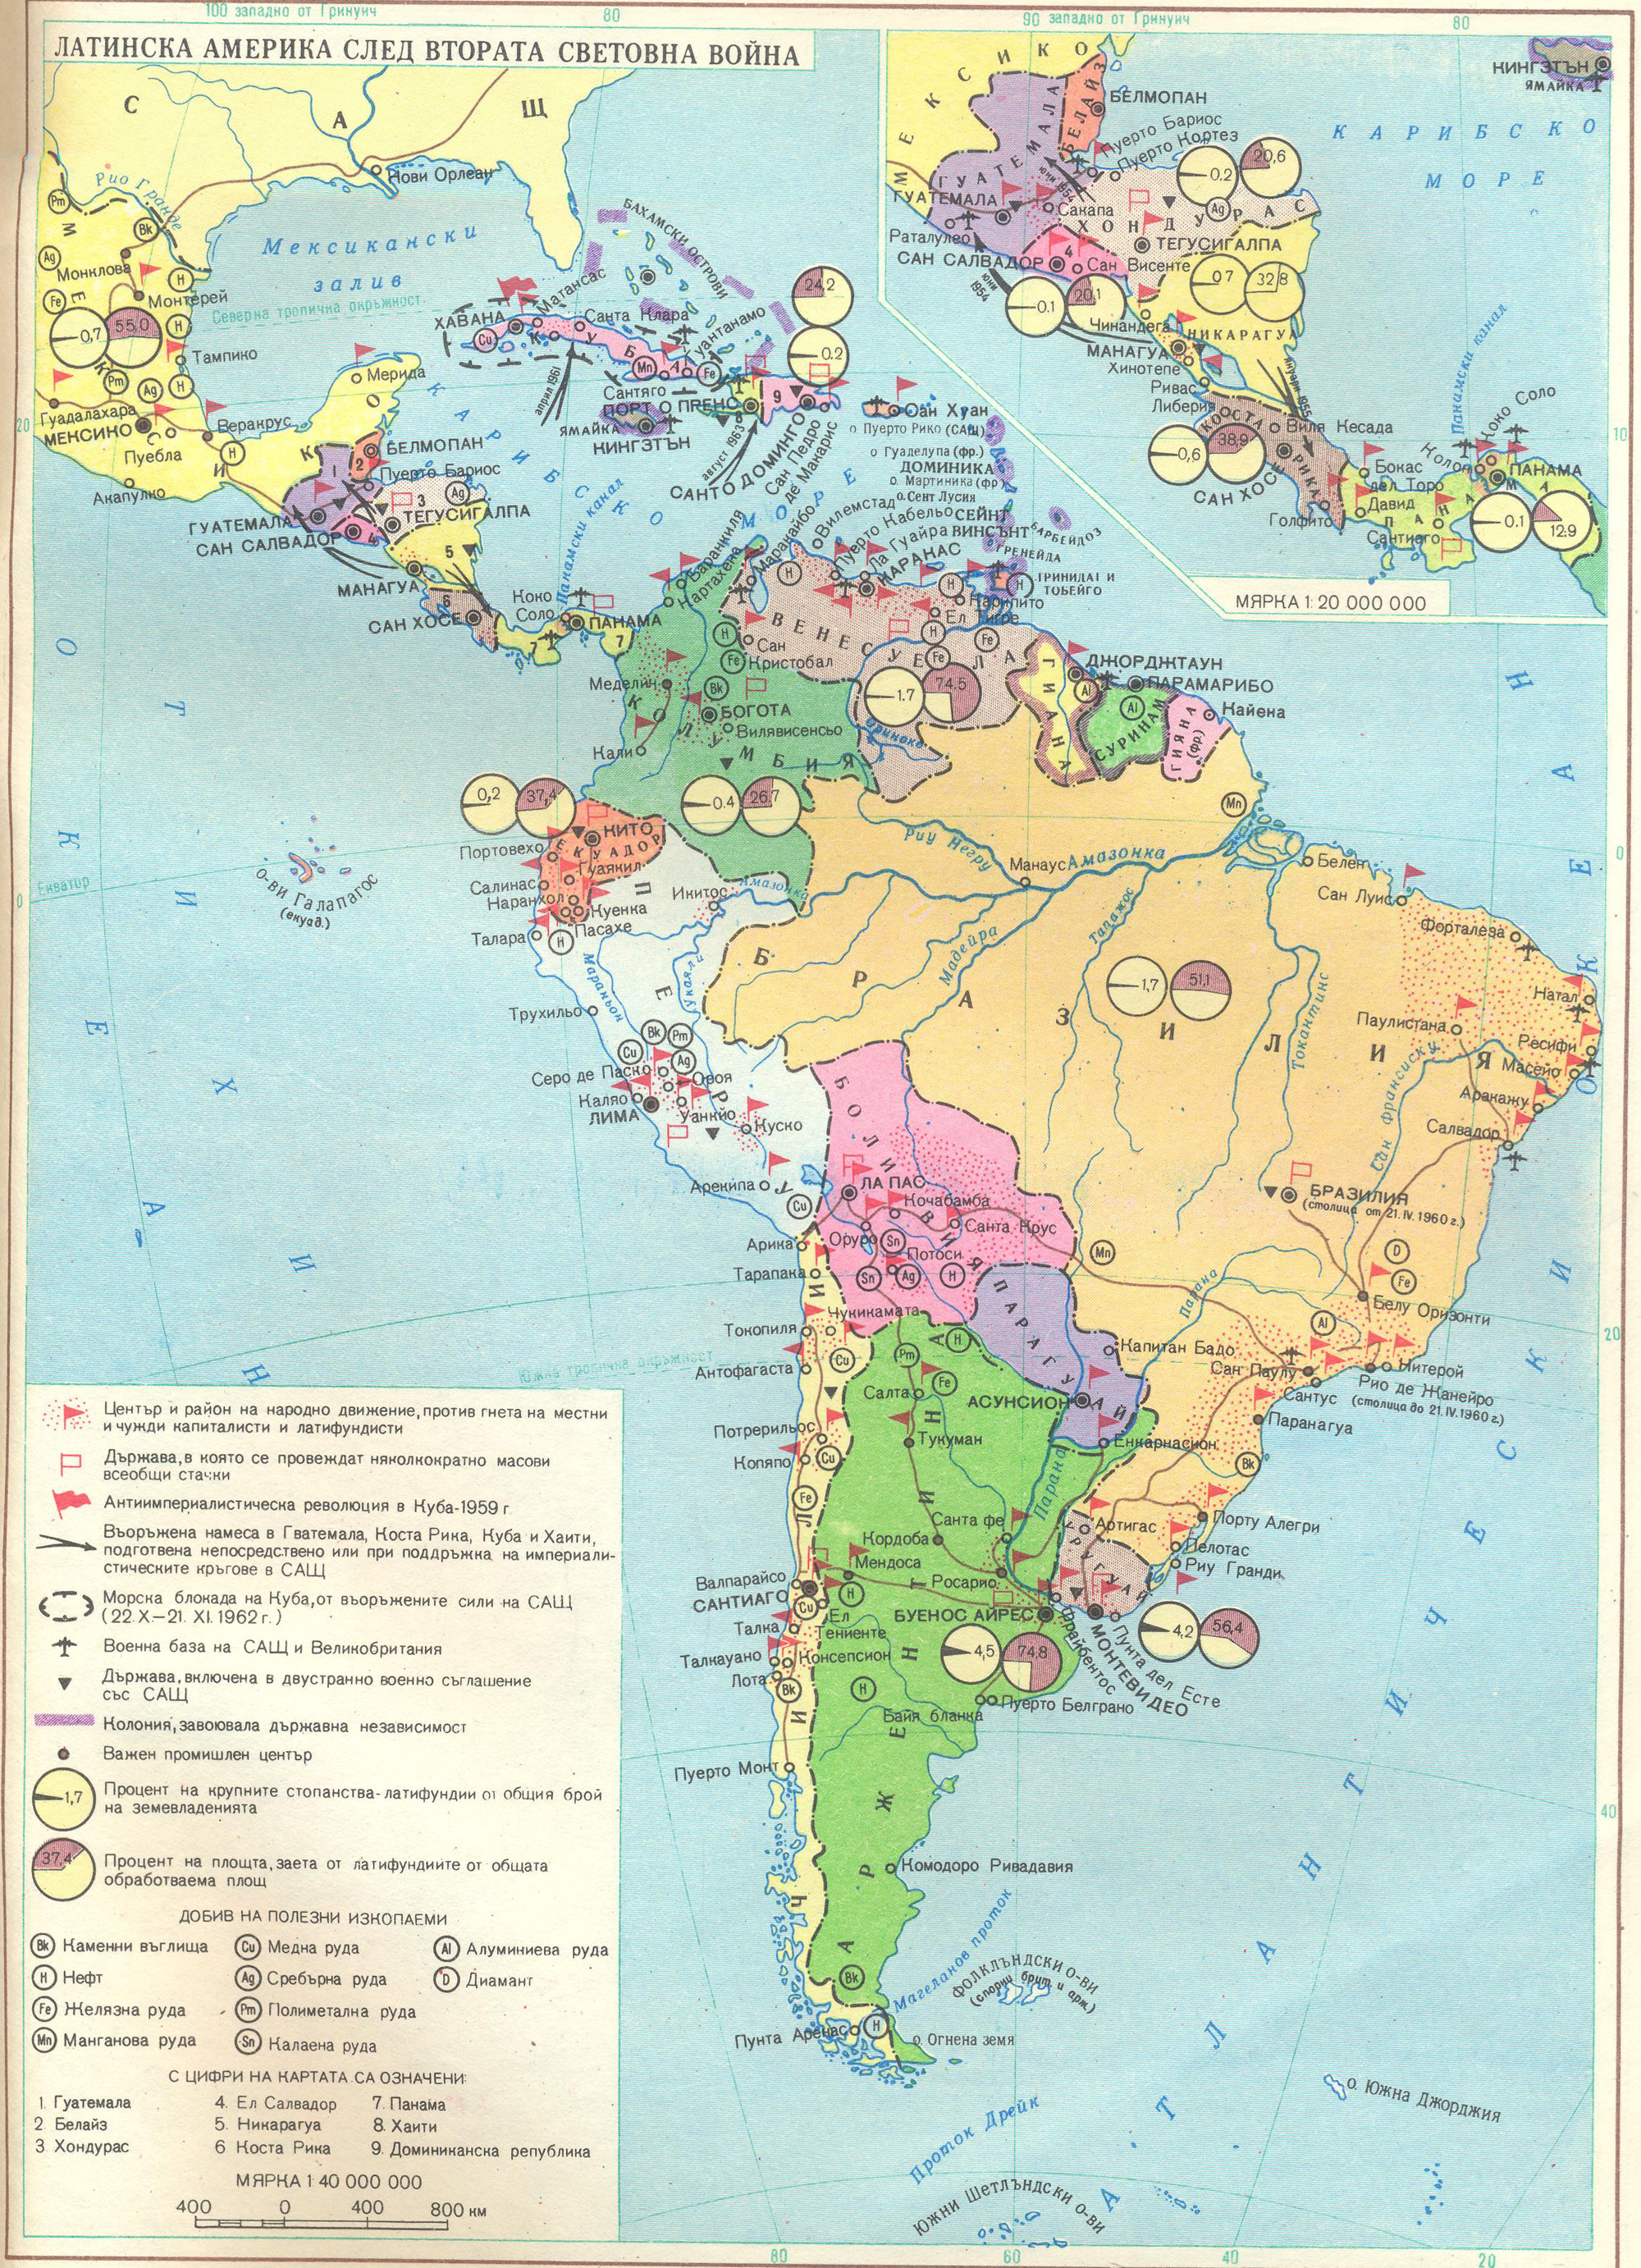 Hd Map Of The World.South America After World War Ii Hd Maps